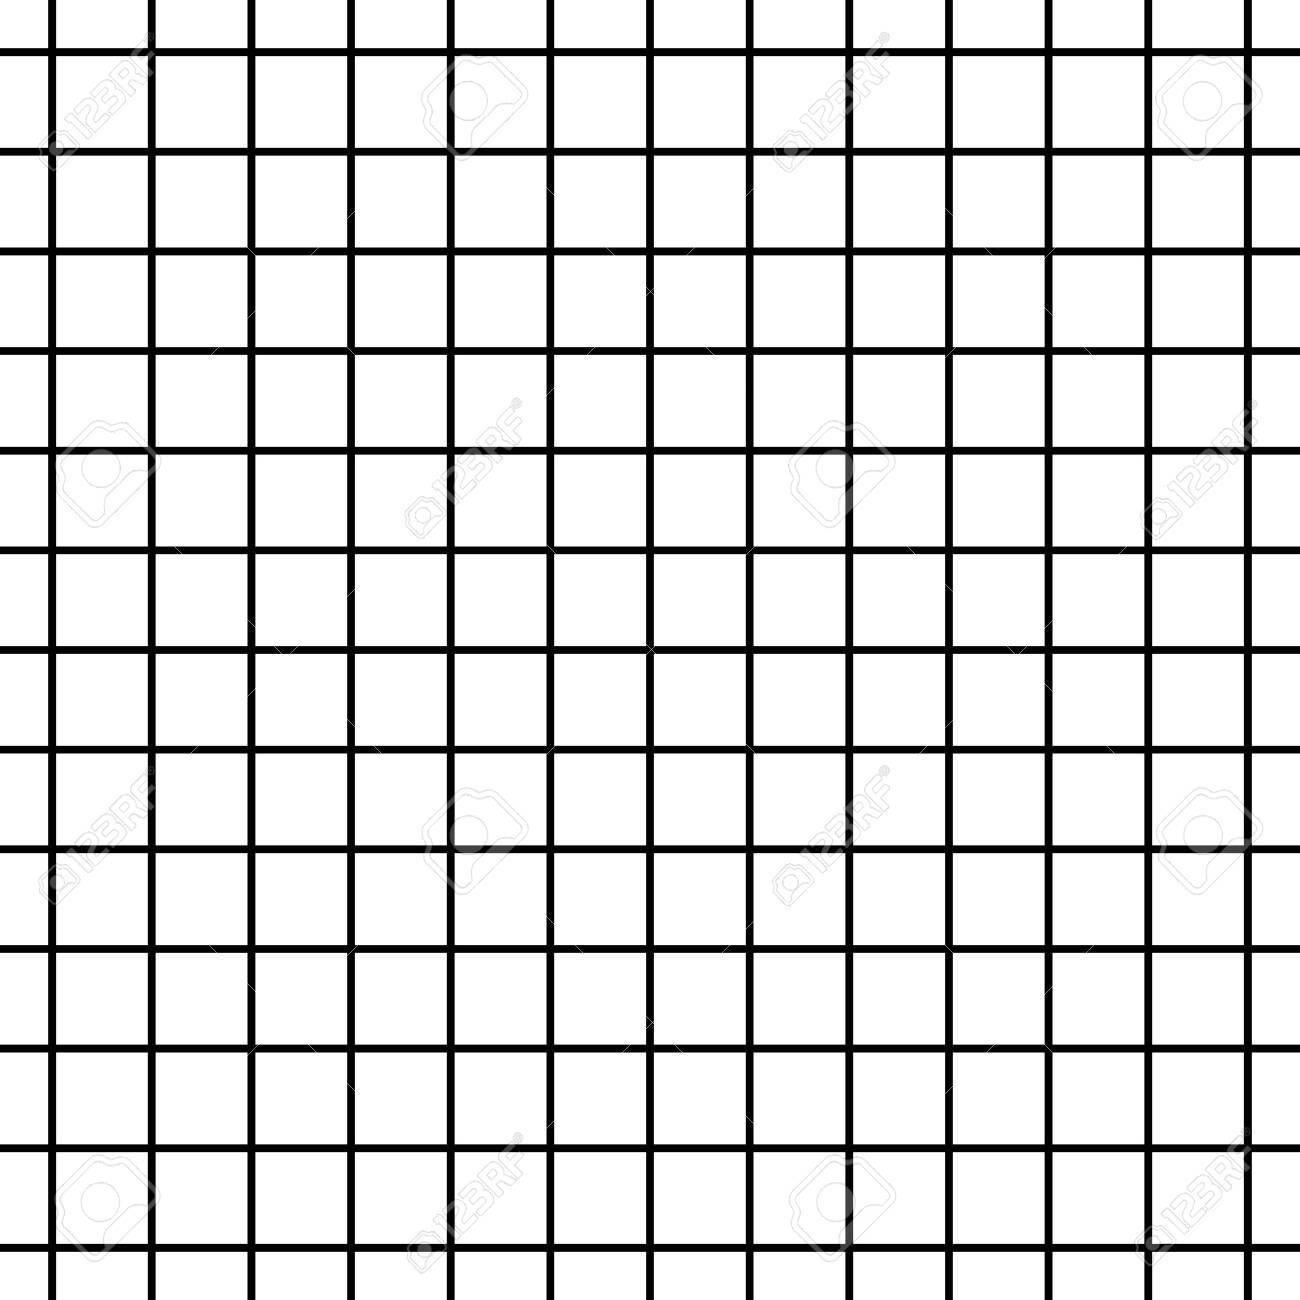 Seamless Black And White Cell Grid Striped Isolated On White Royalty Free Cliparts Vectors And Stock Illustration Image 129615145